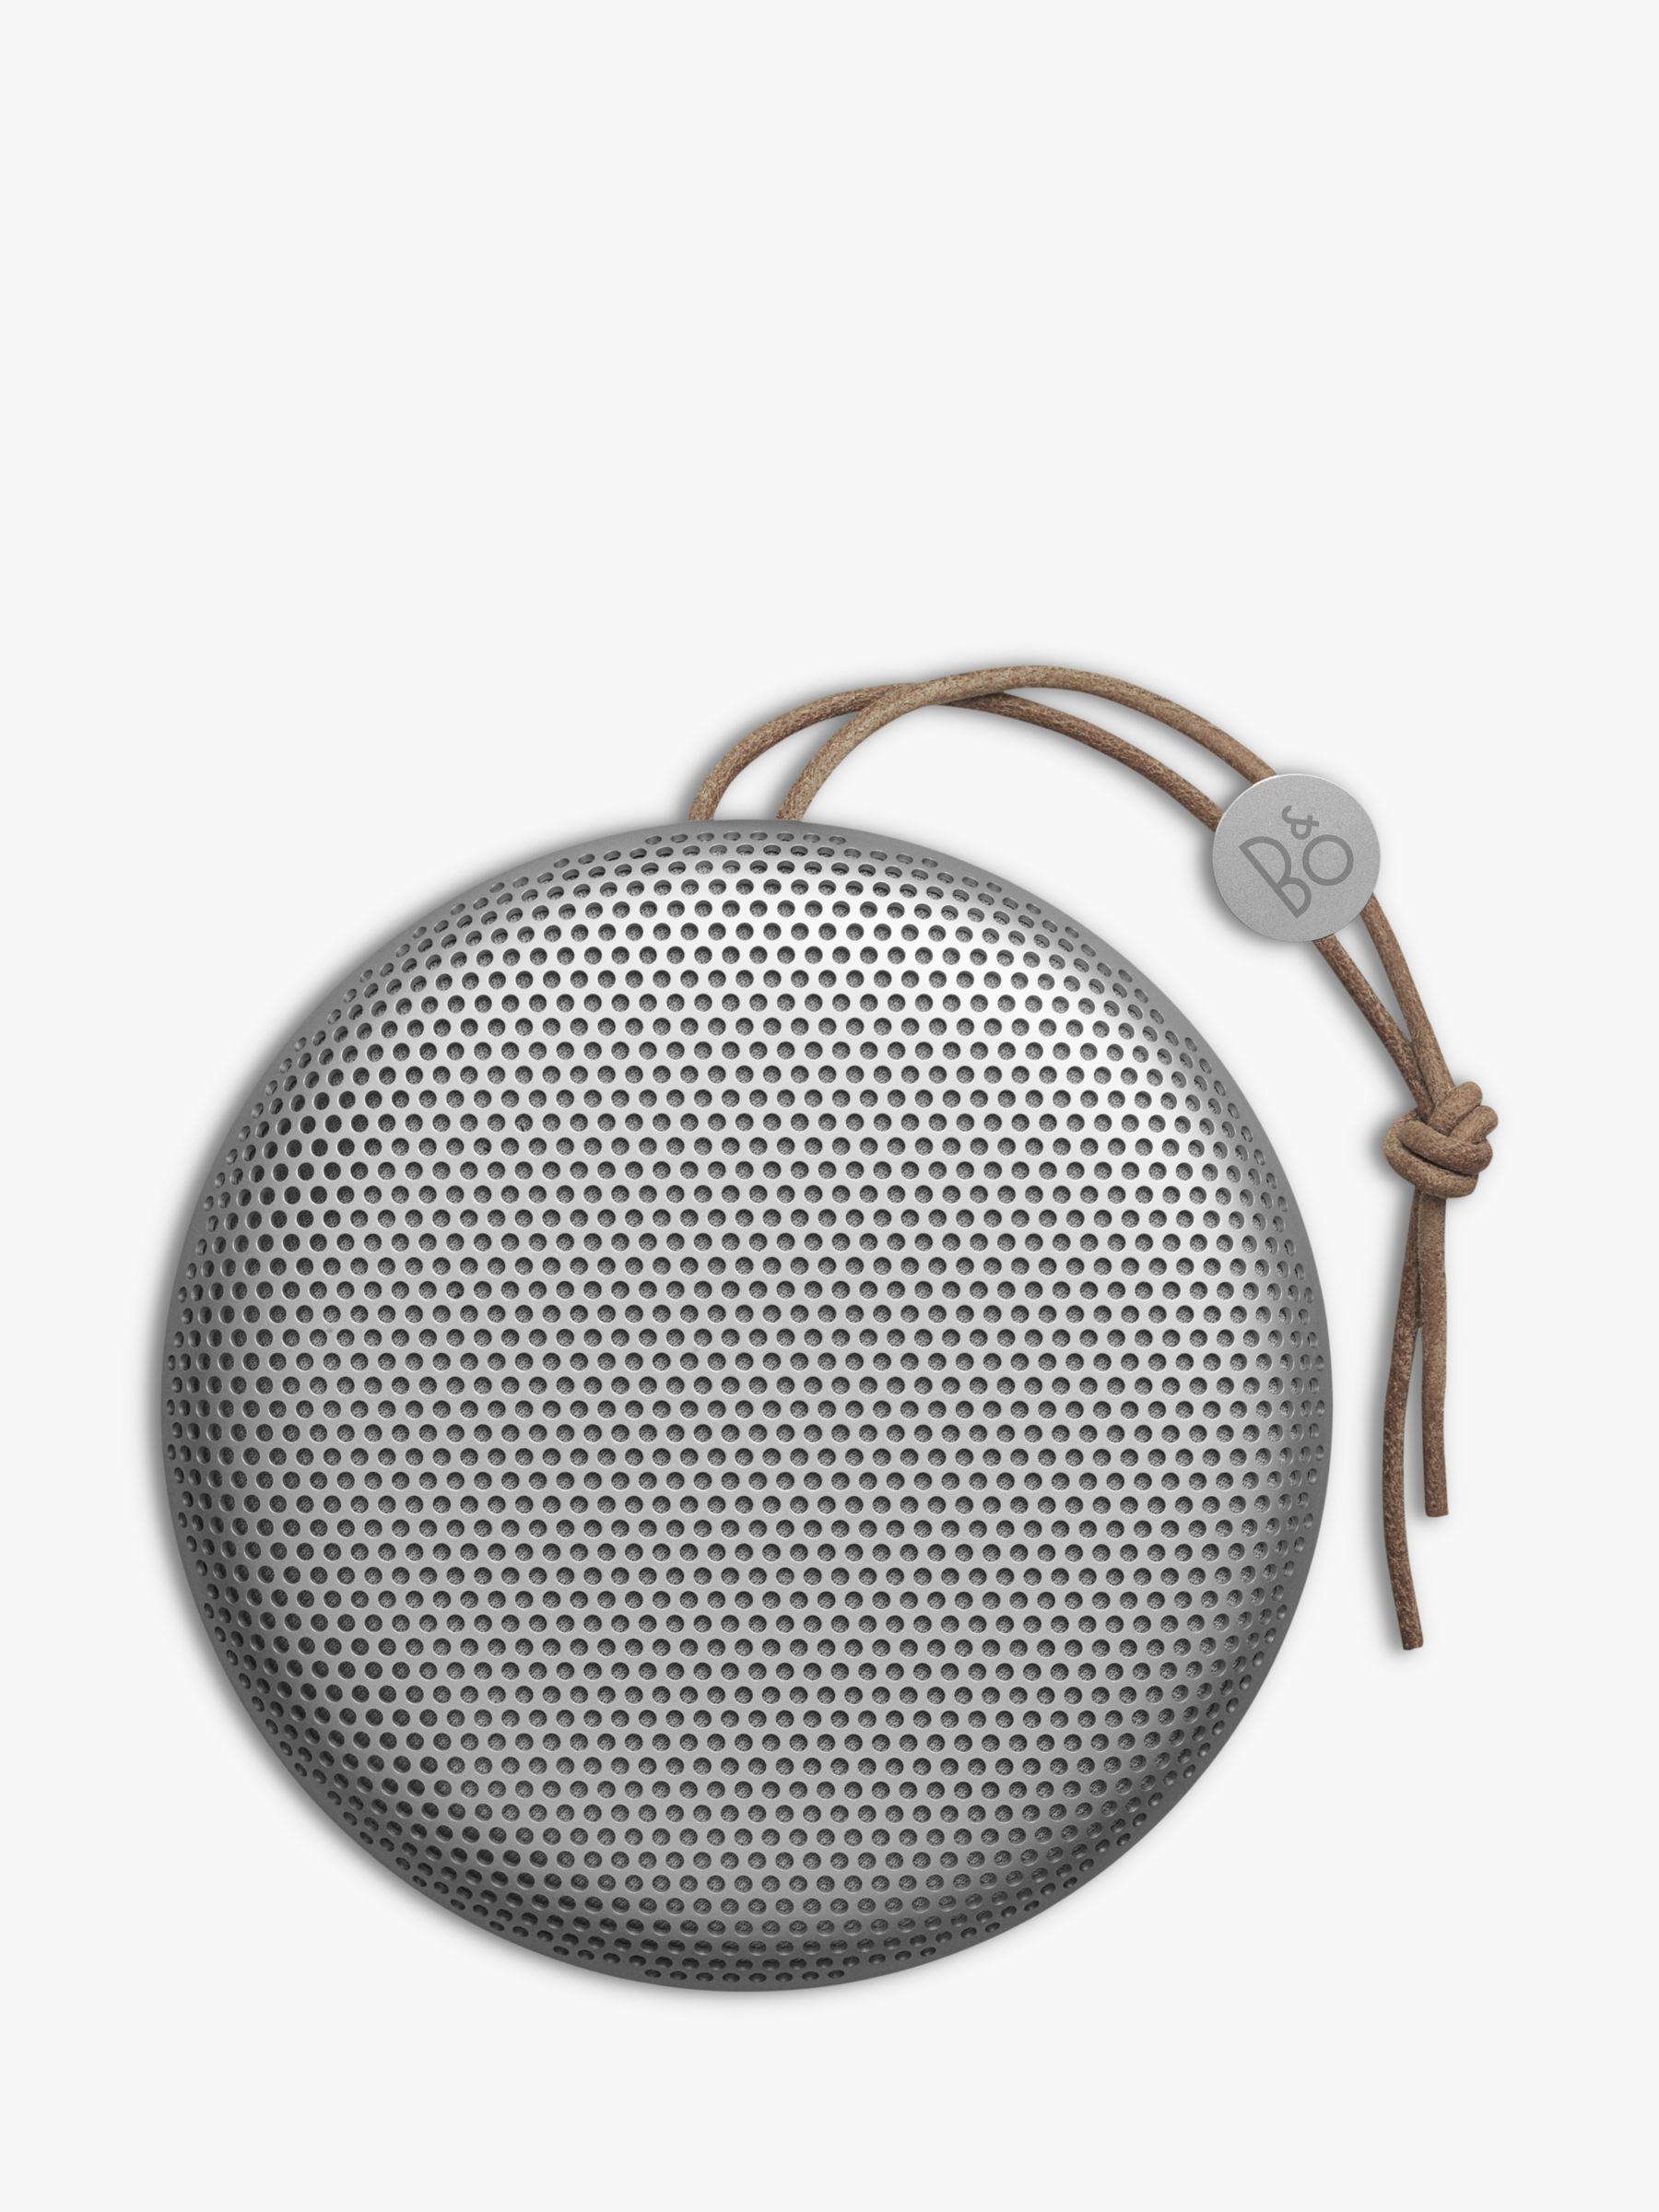 Bang & Olufsen Bang & Olufsen Beoplay A1 Portable Bluetooth Speaker